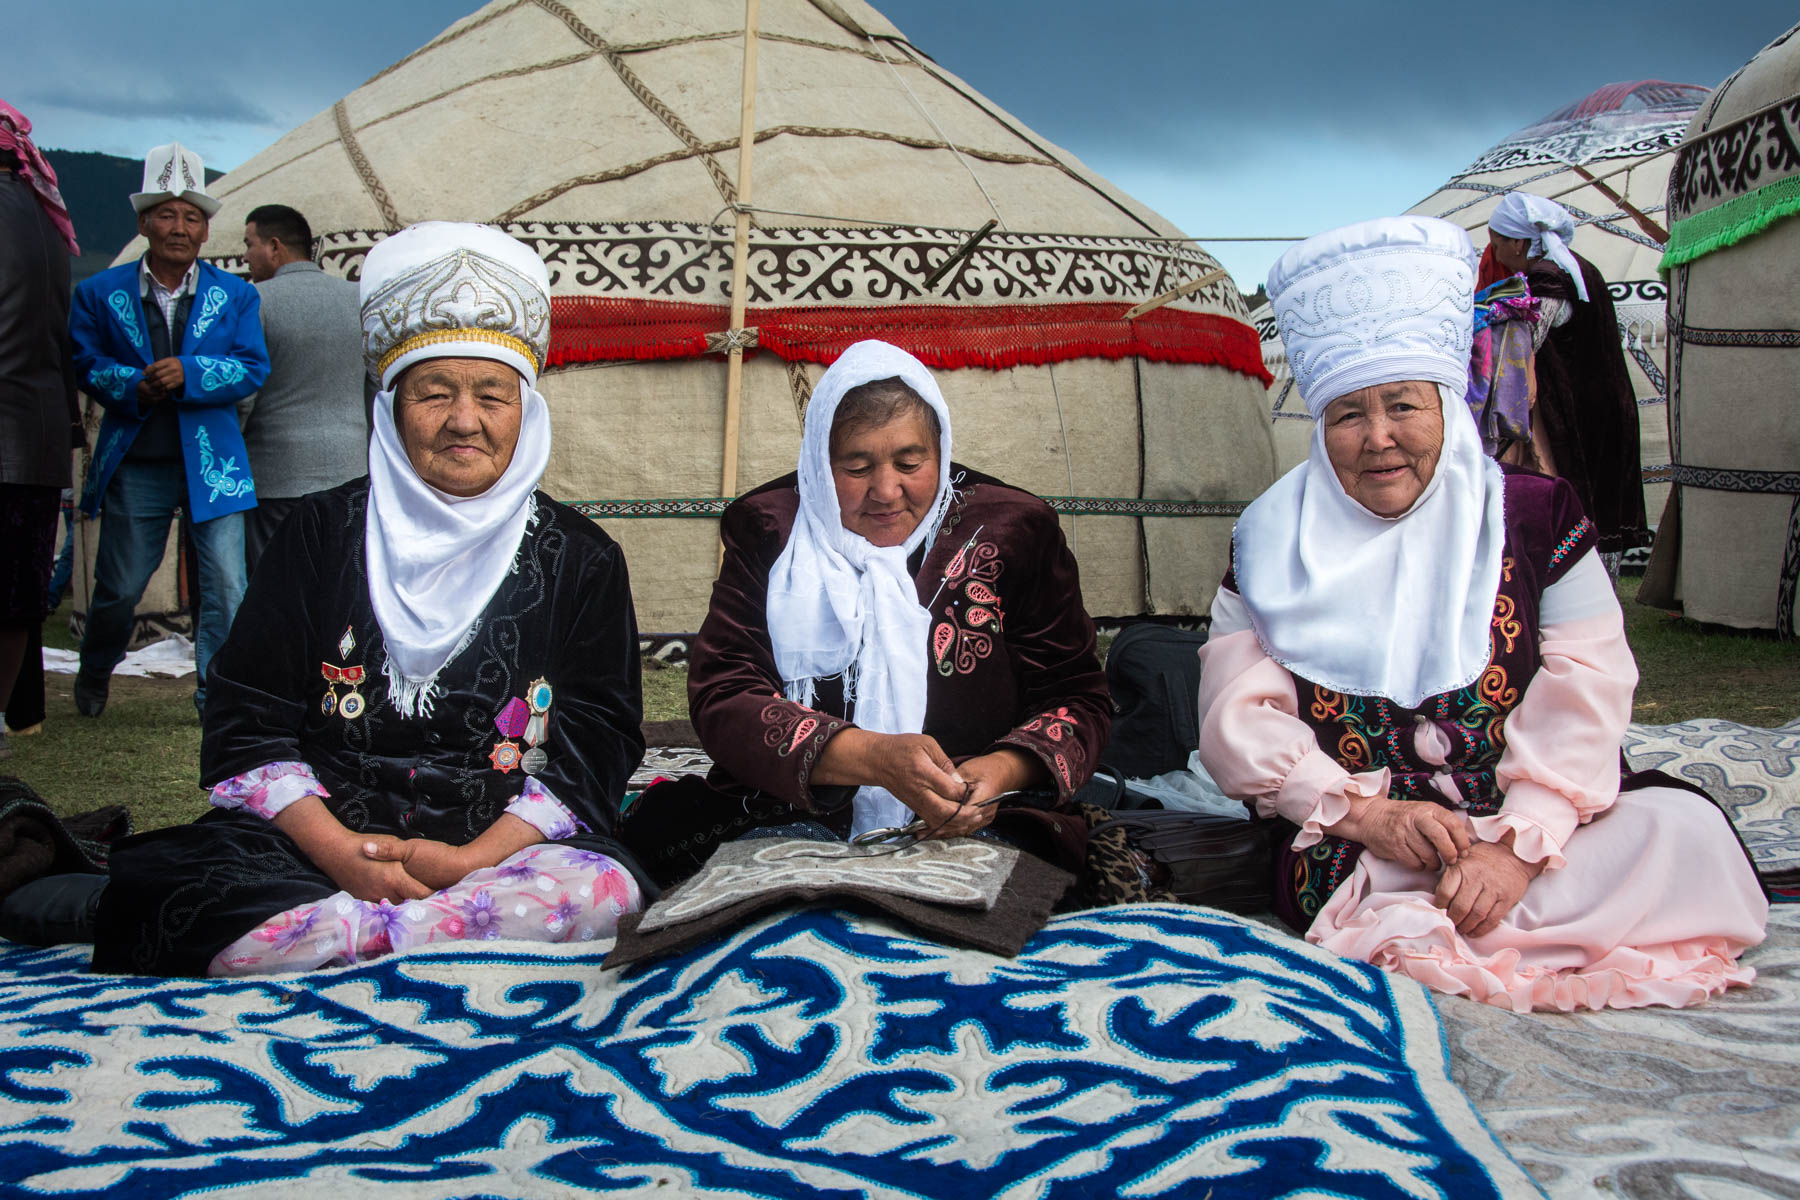 Old women in traditional Kyrgyz clothes